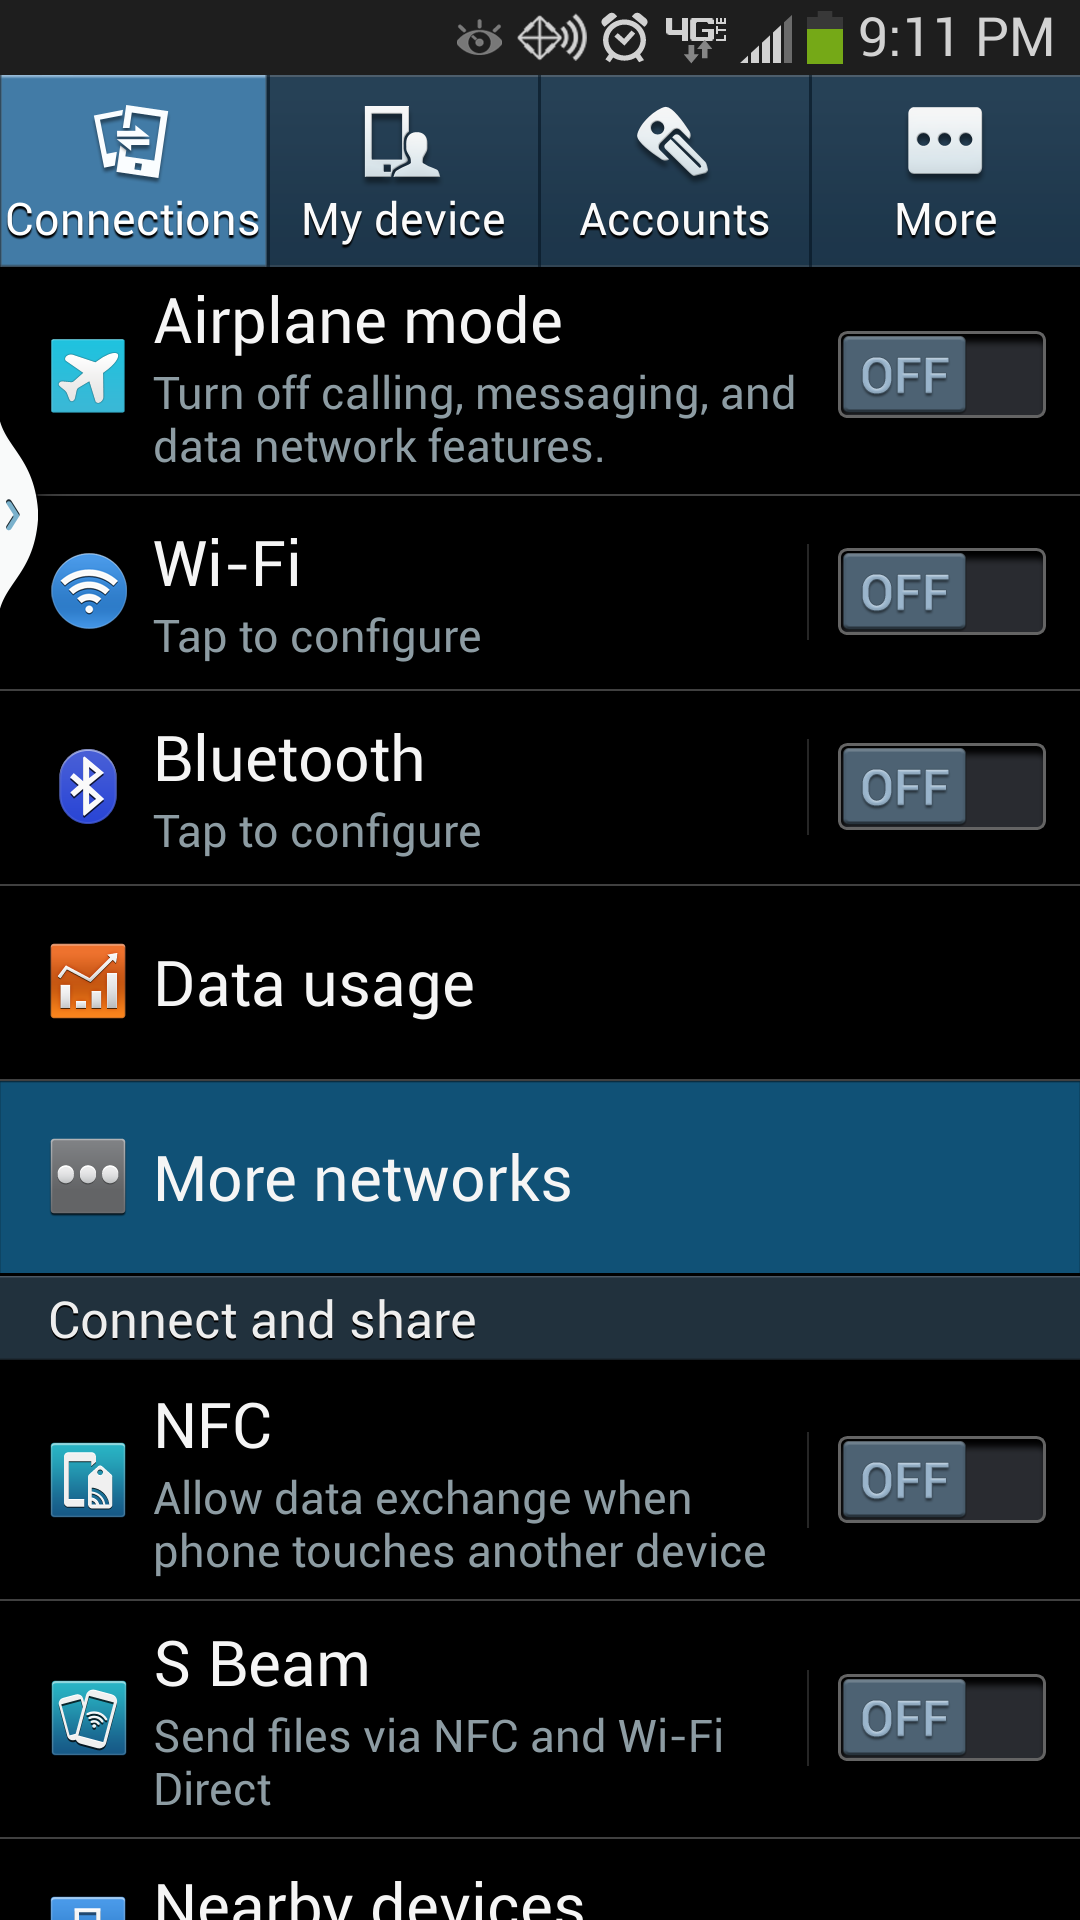 Galaxy S4 Mobile Hotspot View More Networks